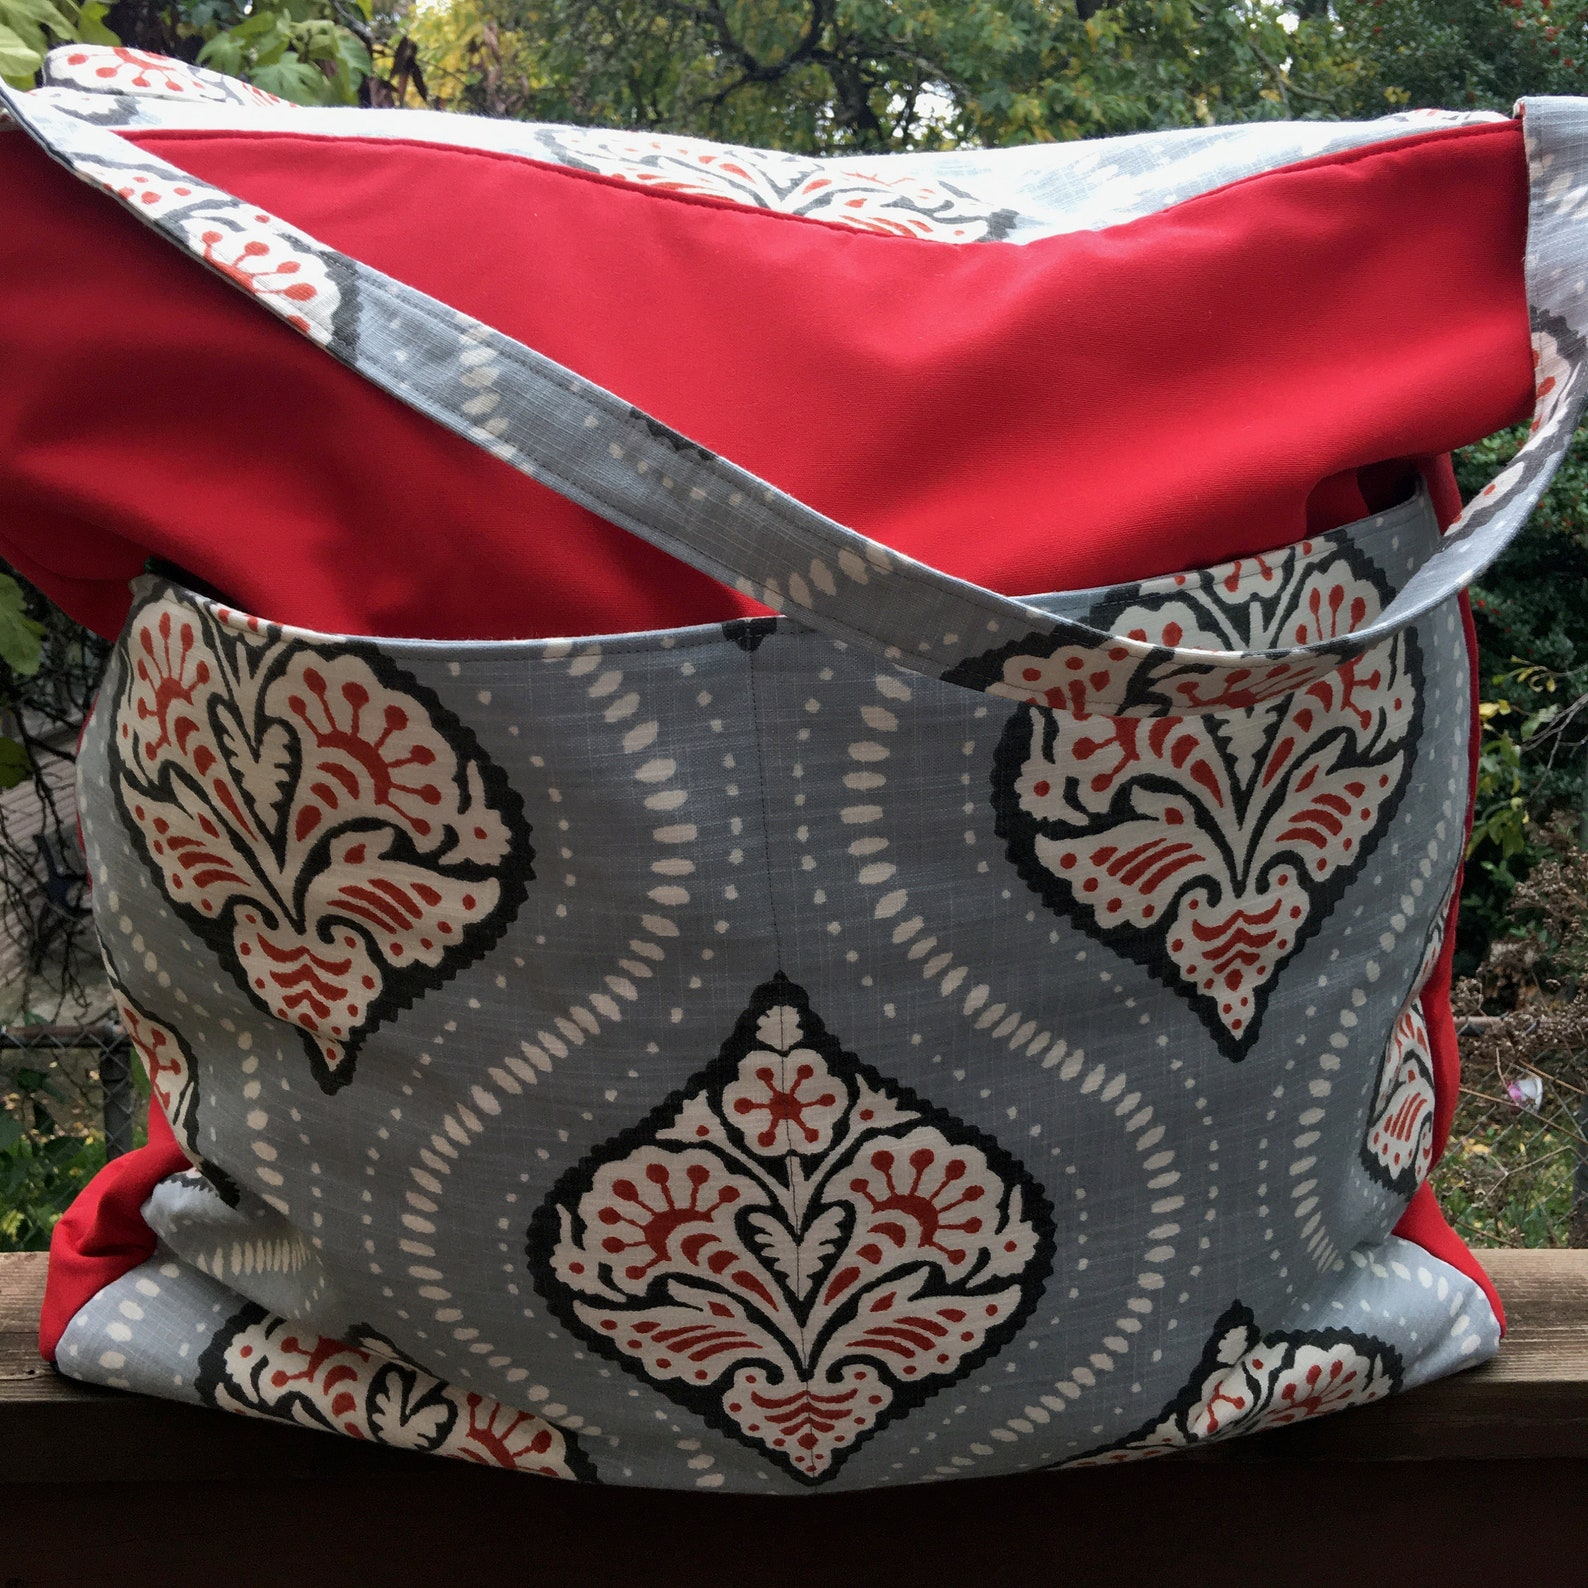 large bag with red and blue print fabric